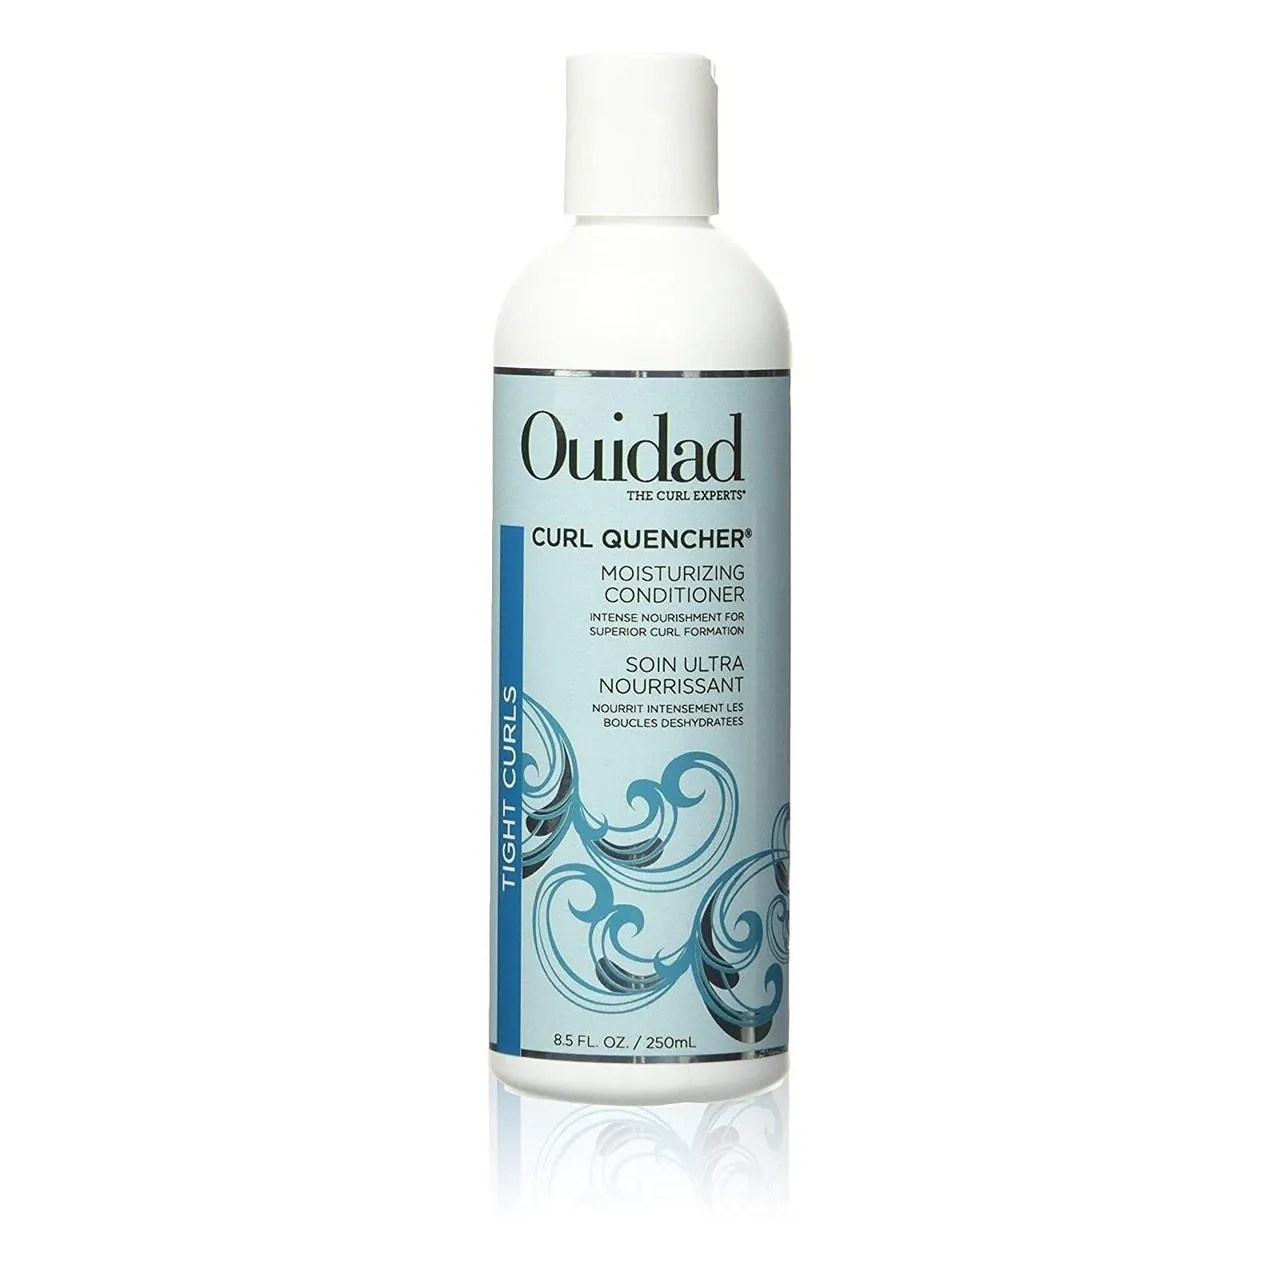 Ouidad Curl Quencher Moisturizing Conditioner on white background